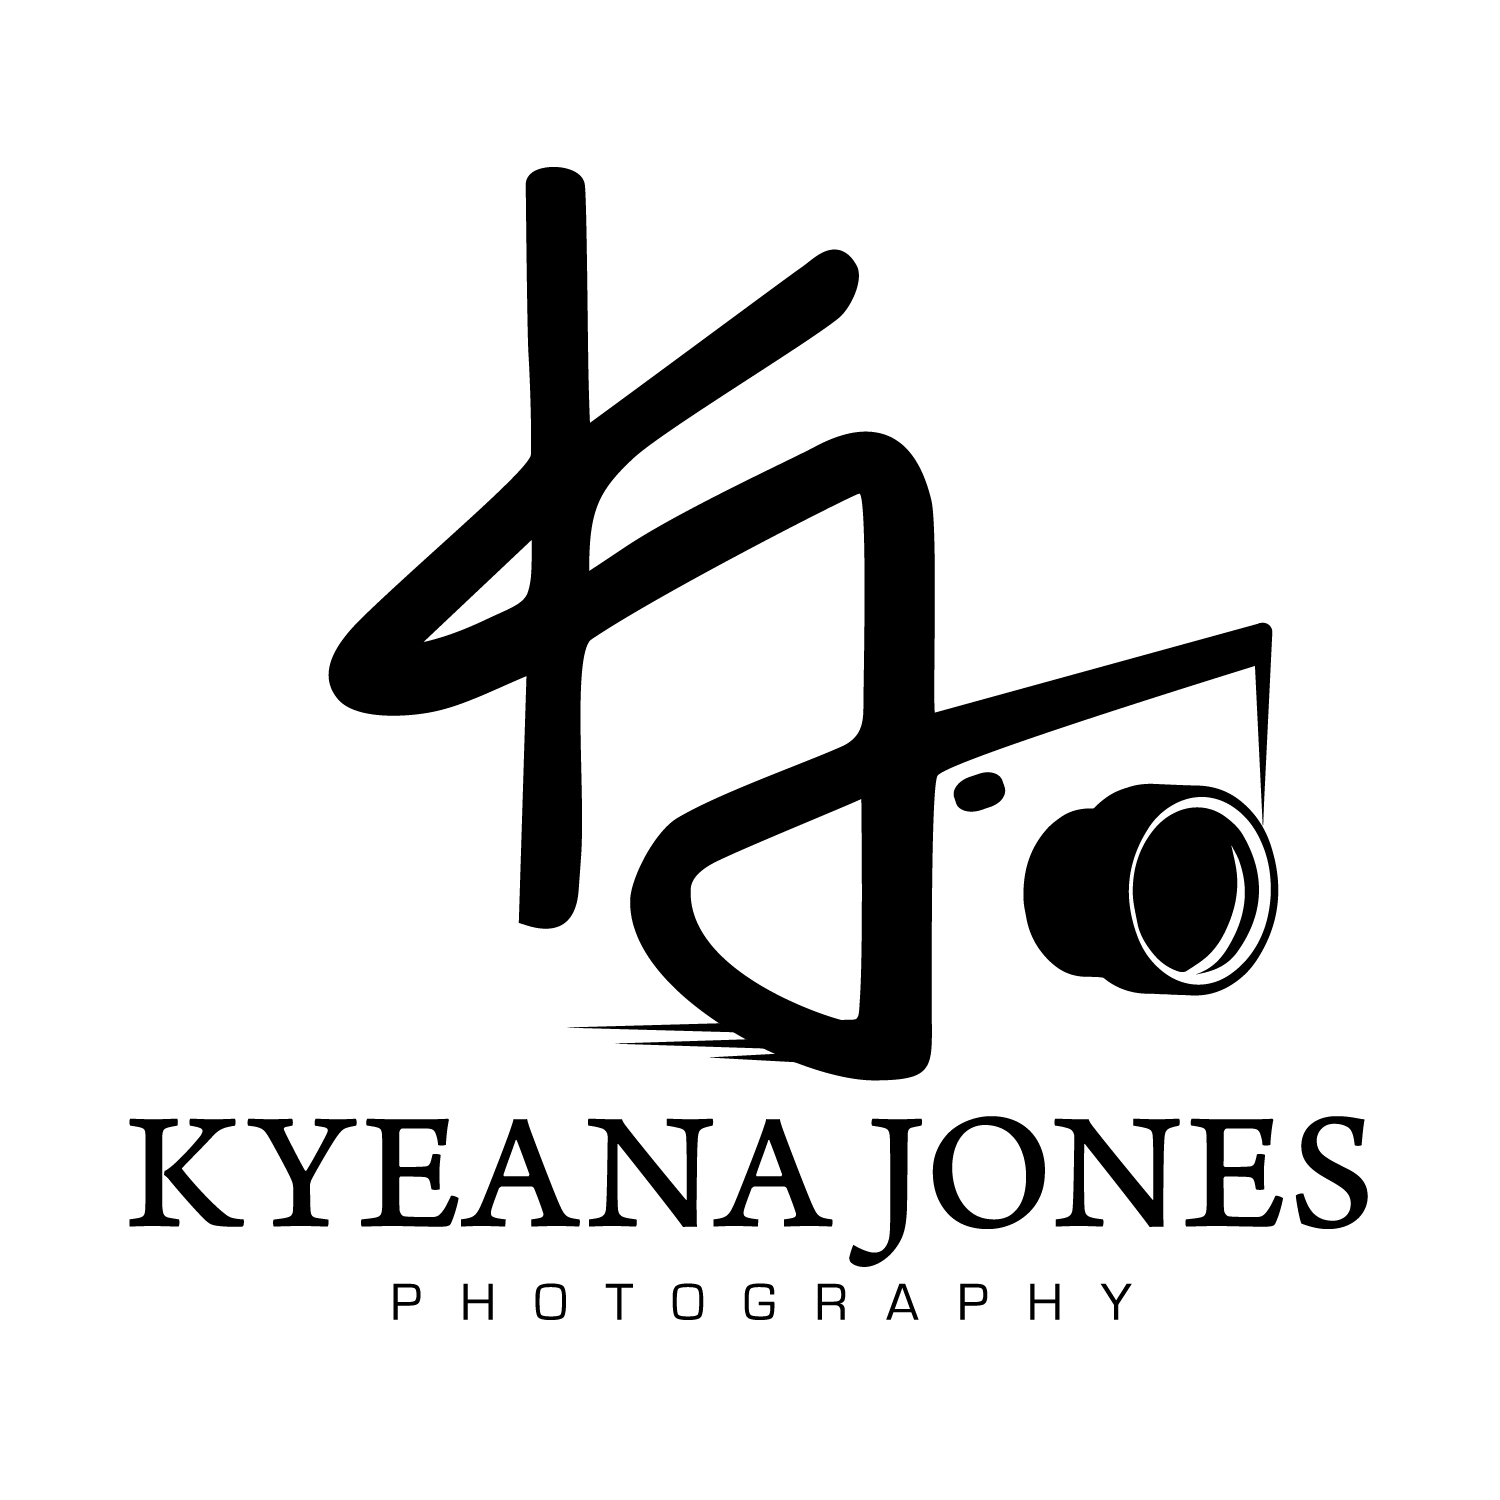 Kyeana Jones Photography